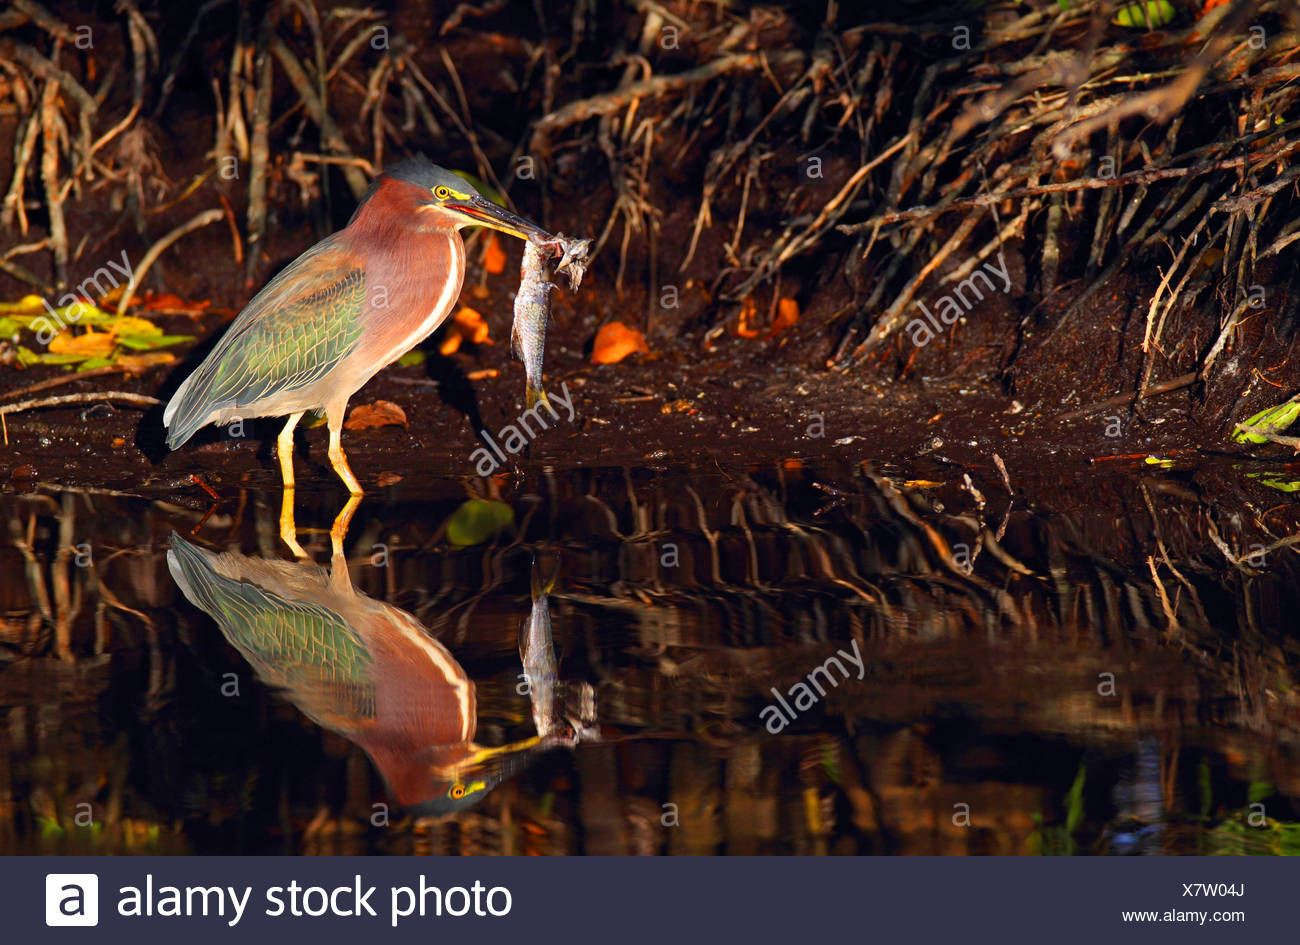 Green-backed Heron, Green Backed Heron (Butorides spinosa), eating a fish, USA, Florida, Merritt Island - Stock Image